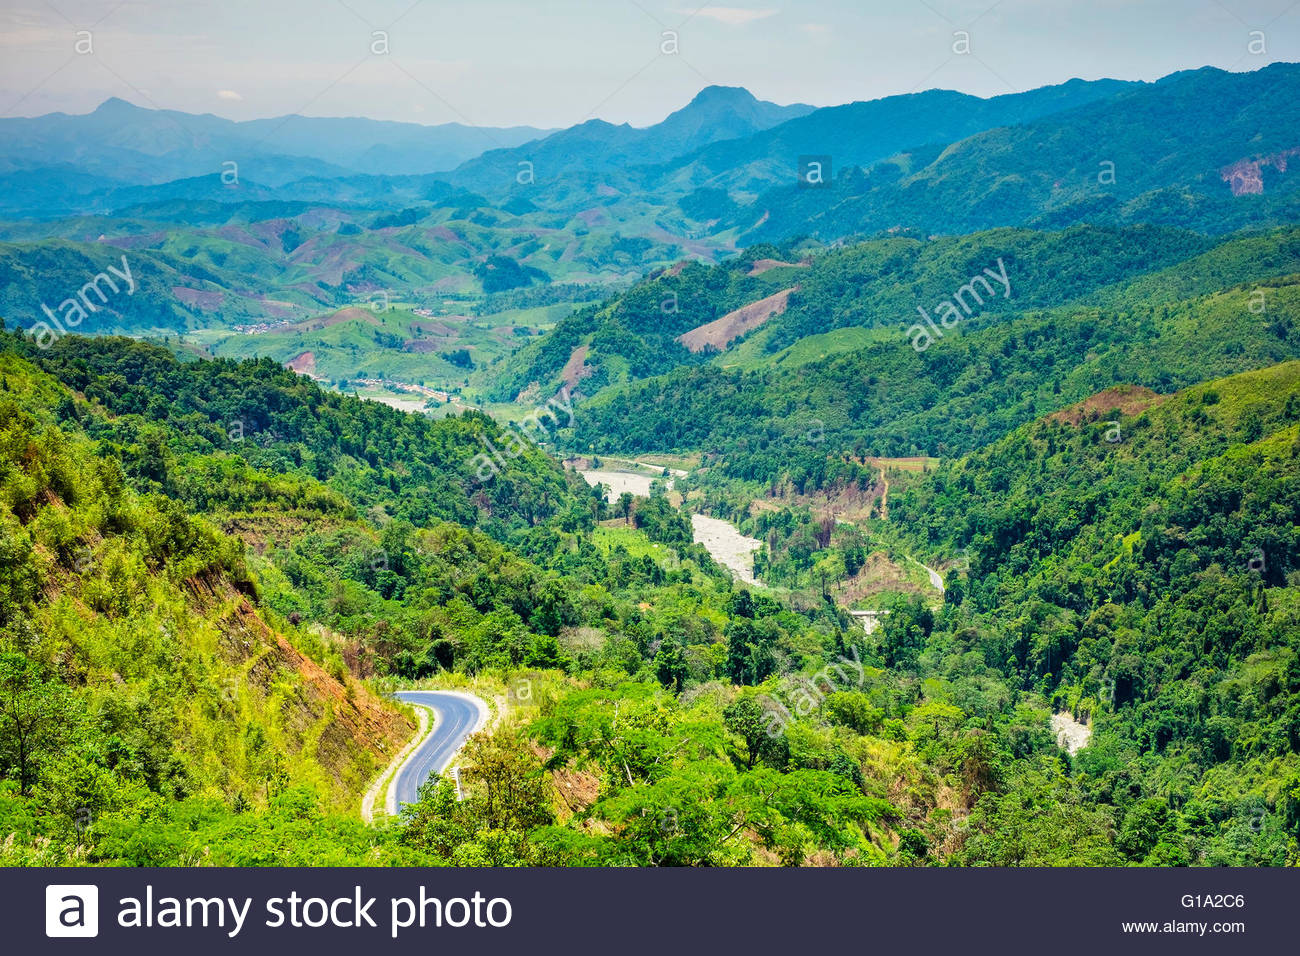 Rolling hills and mountains, lush rural landscape, Louangphabang Province, Laos - Stock Image